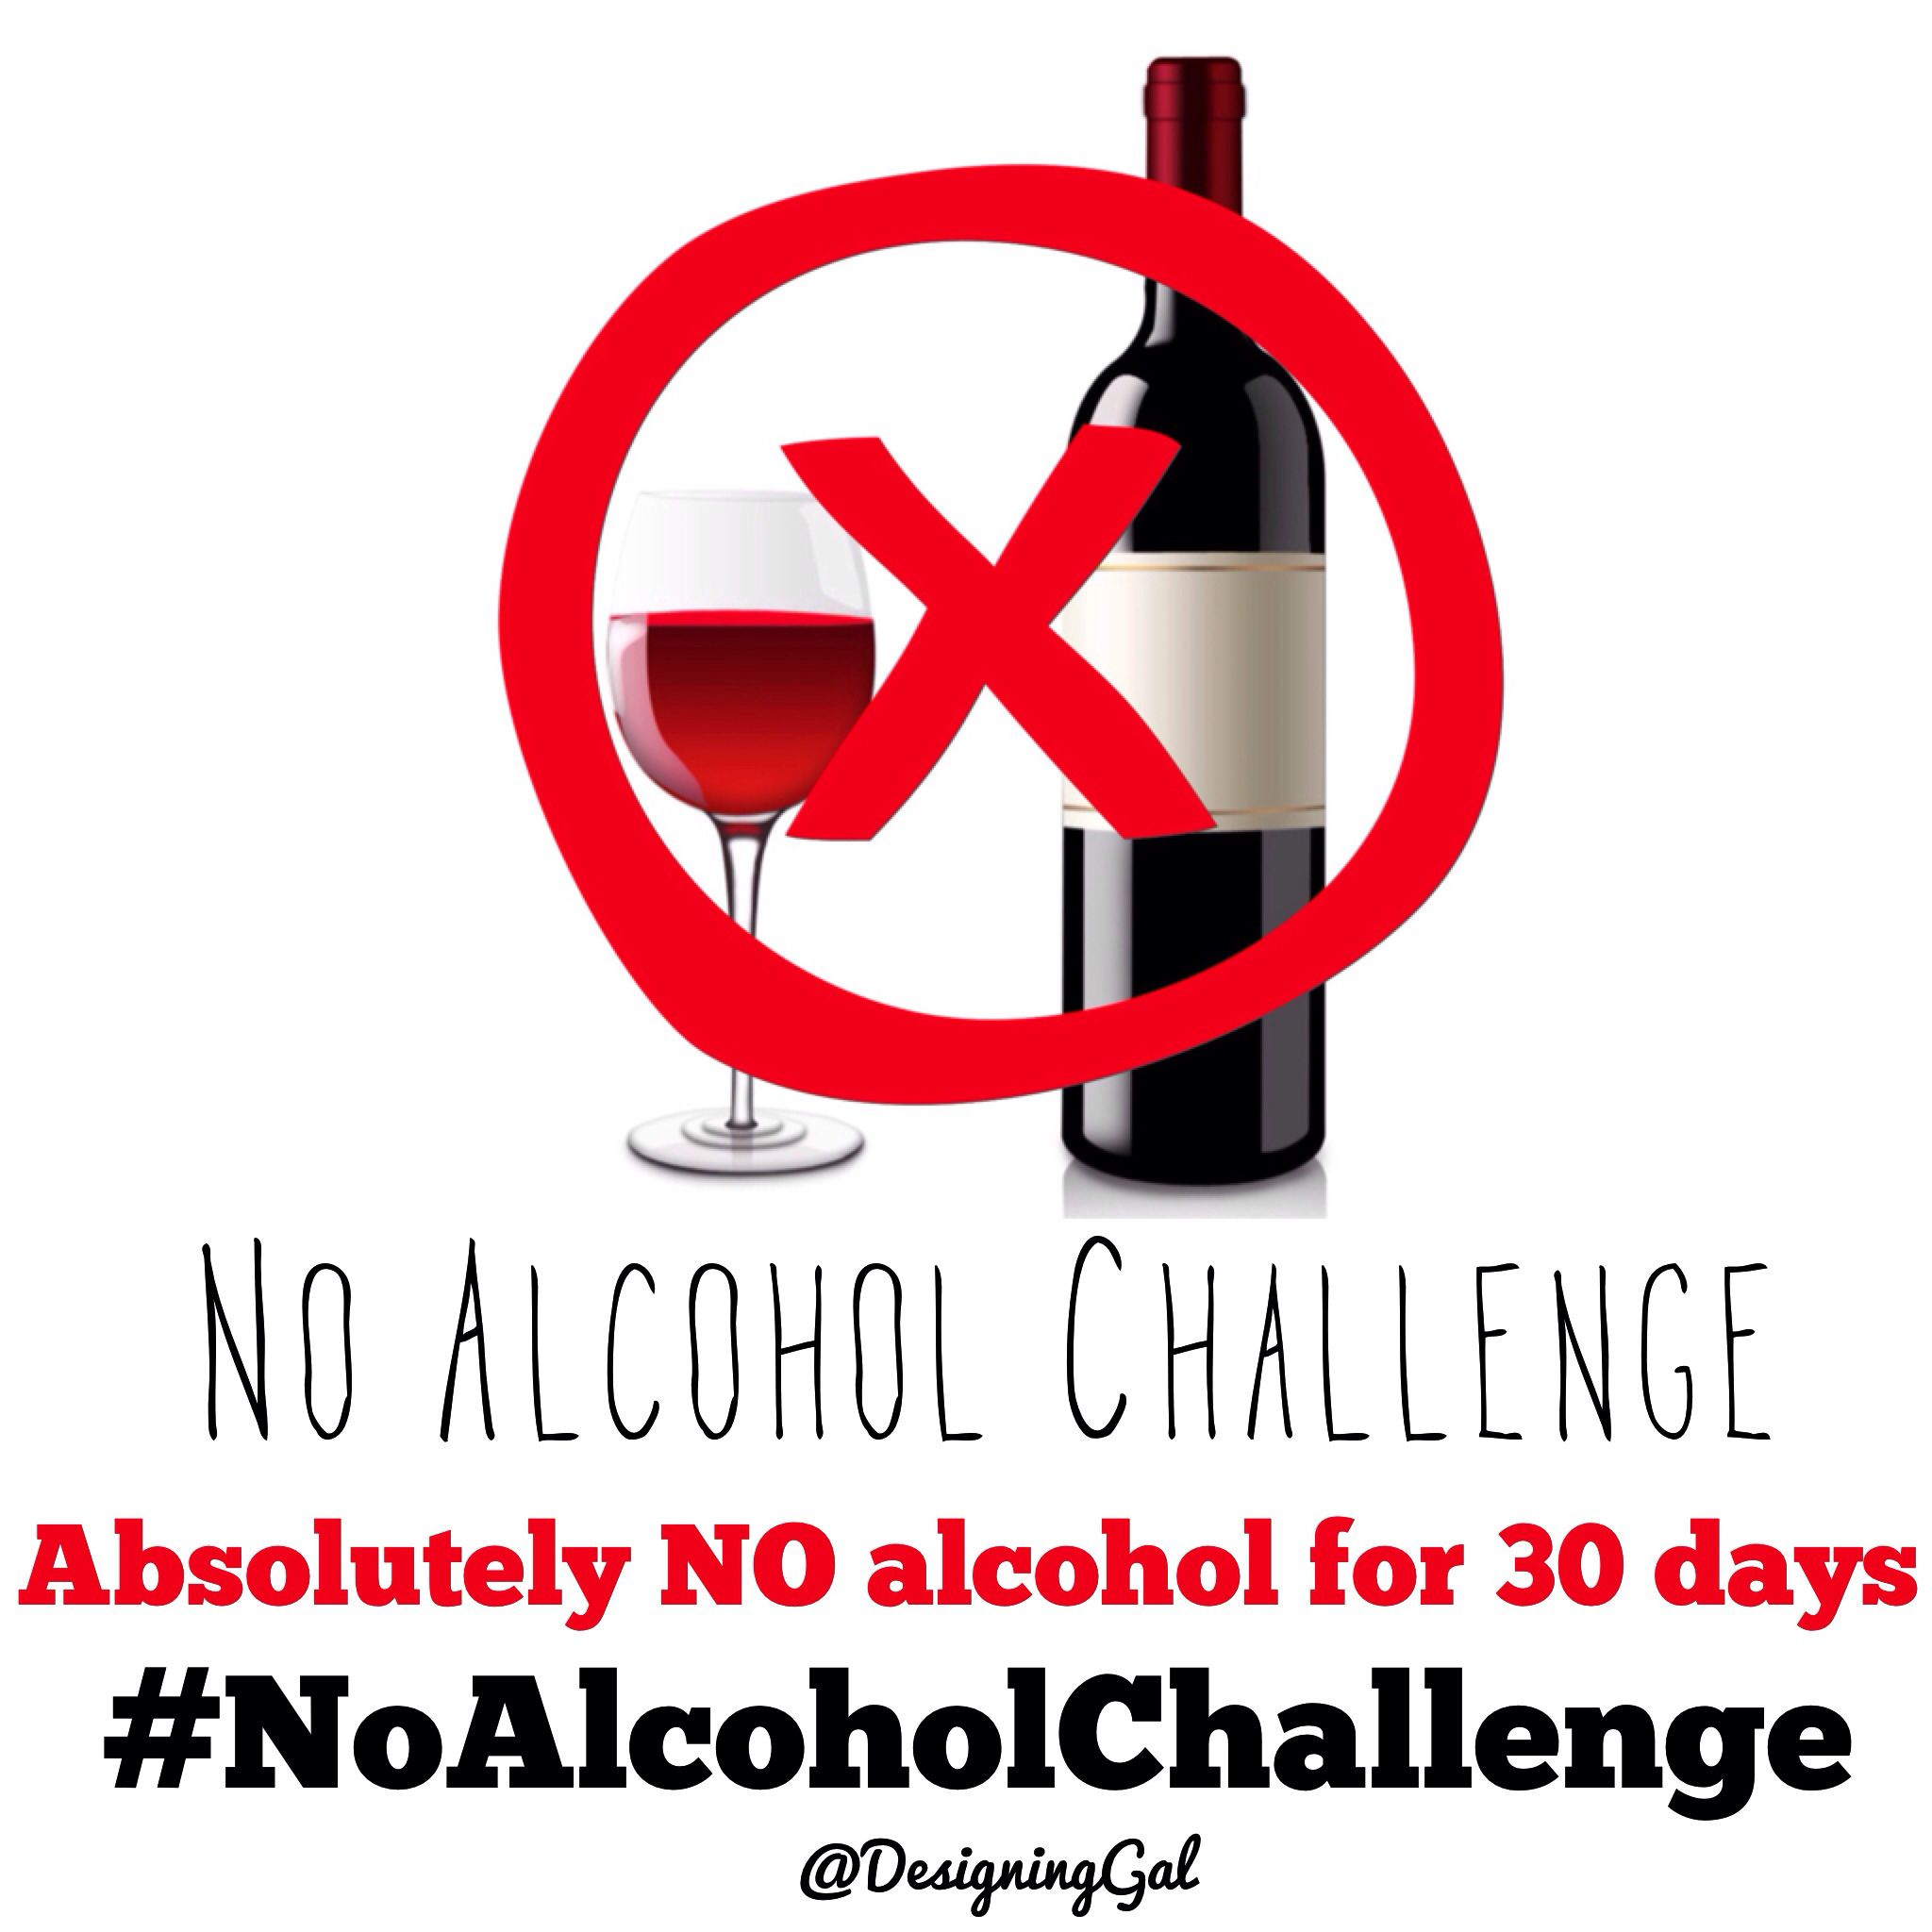 Pin By Designing Gal On Fitness Inspiration Quitting Alcohol Alcohol Benefits 30 Day Challenge